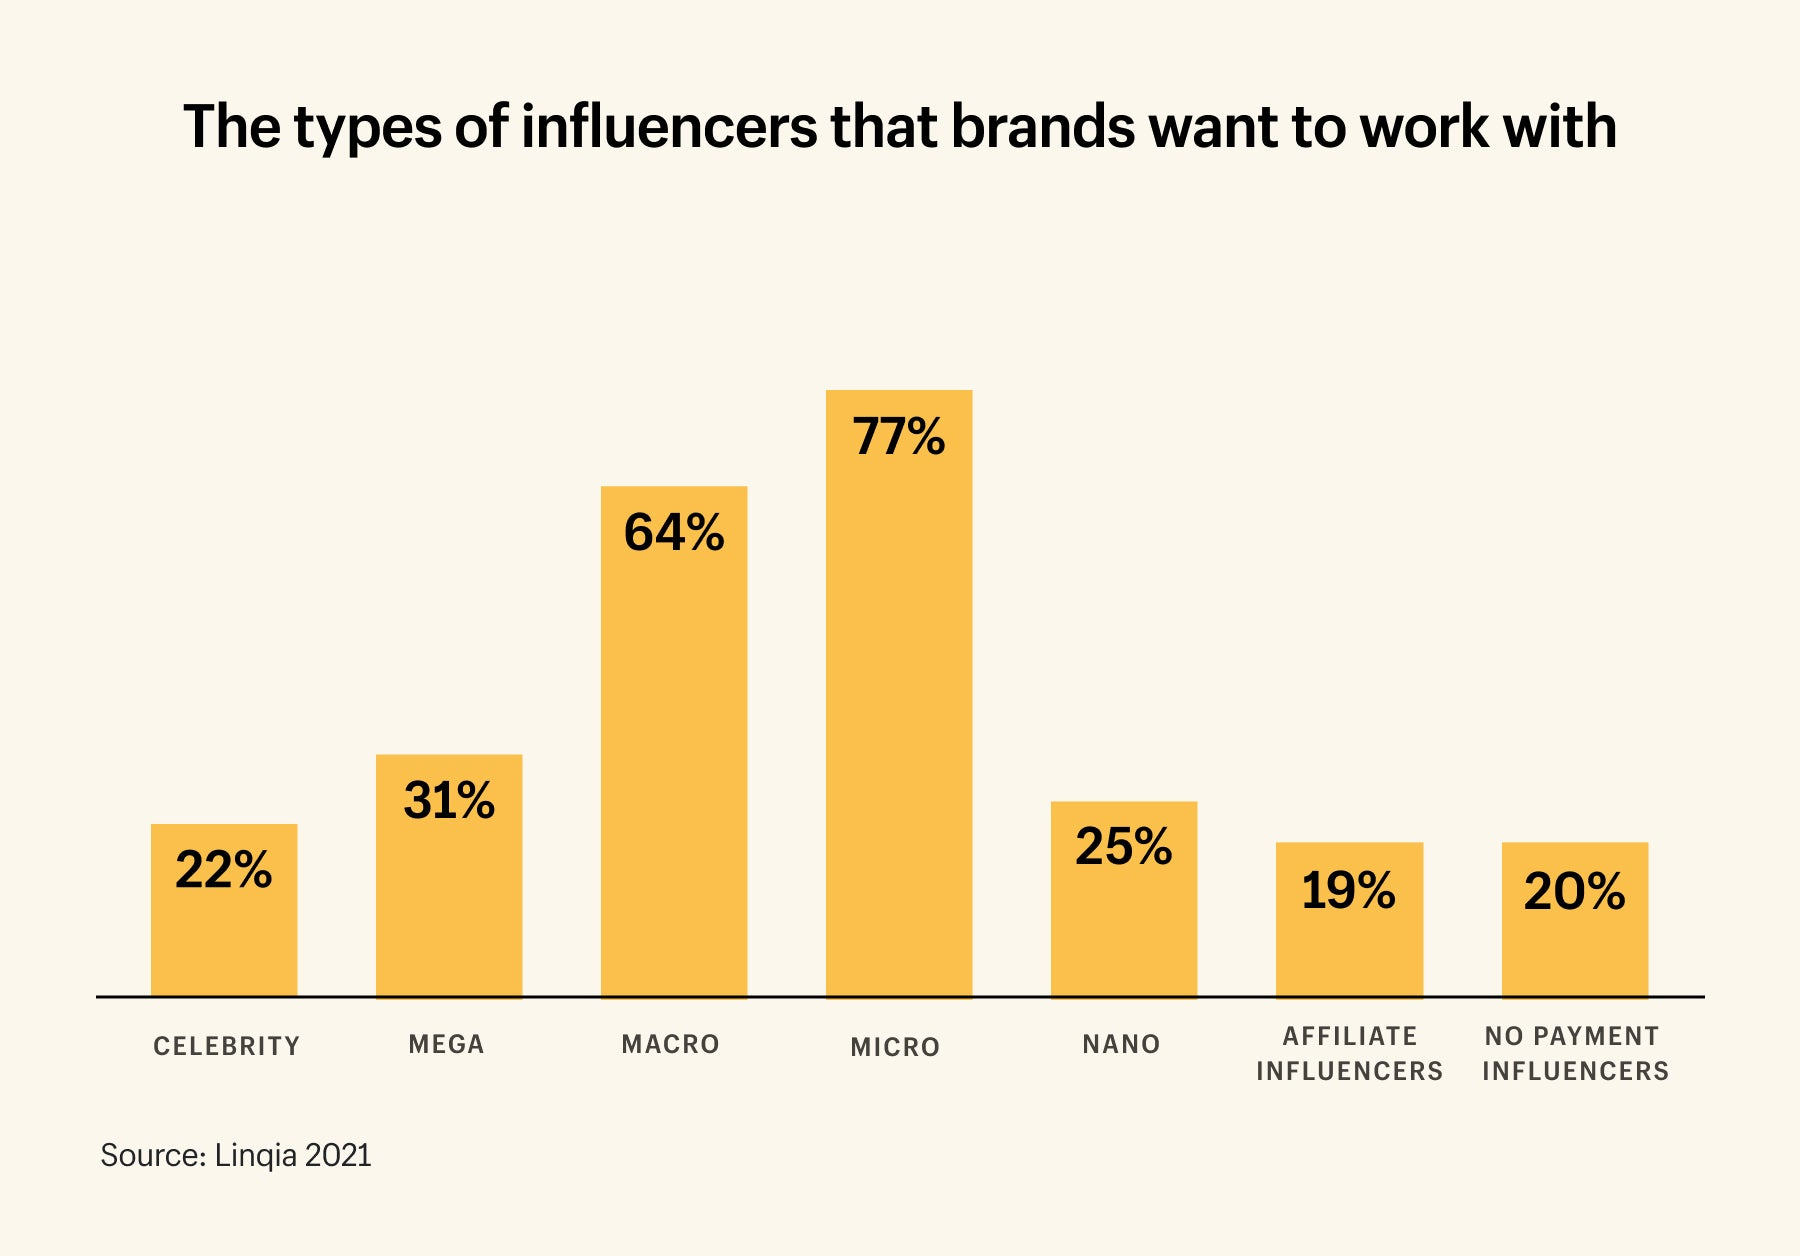 77% of brands want to work with micro-influencers